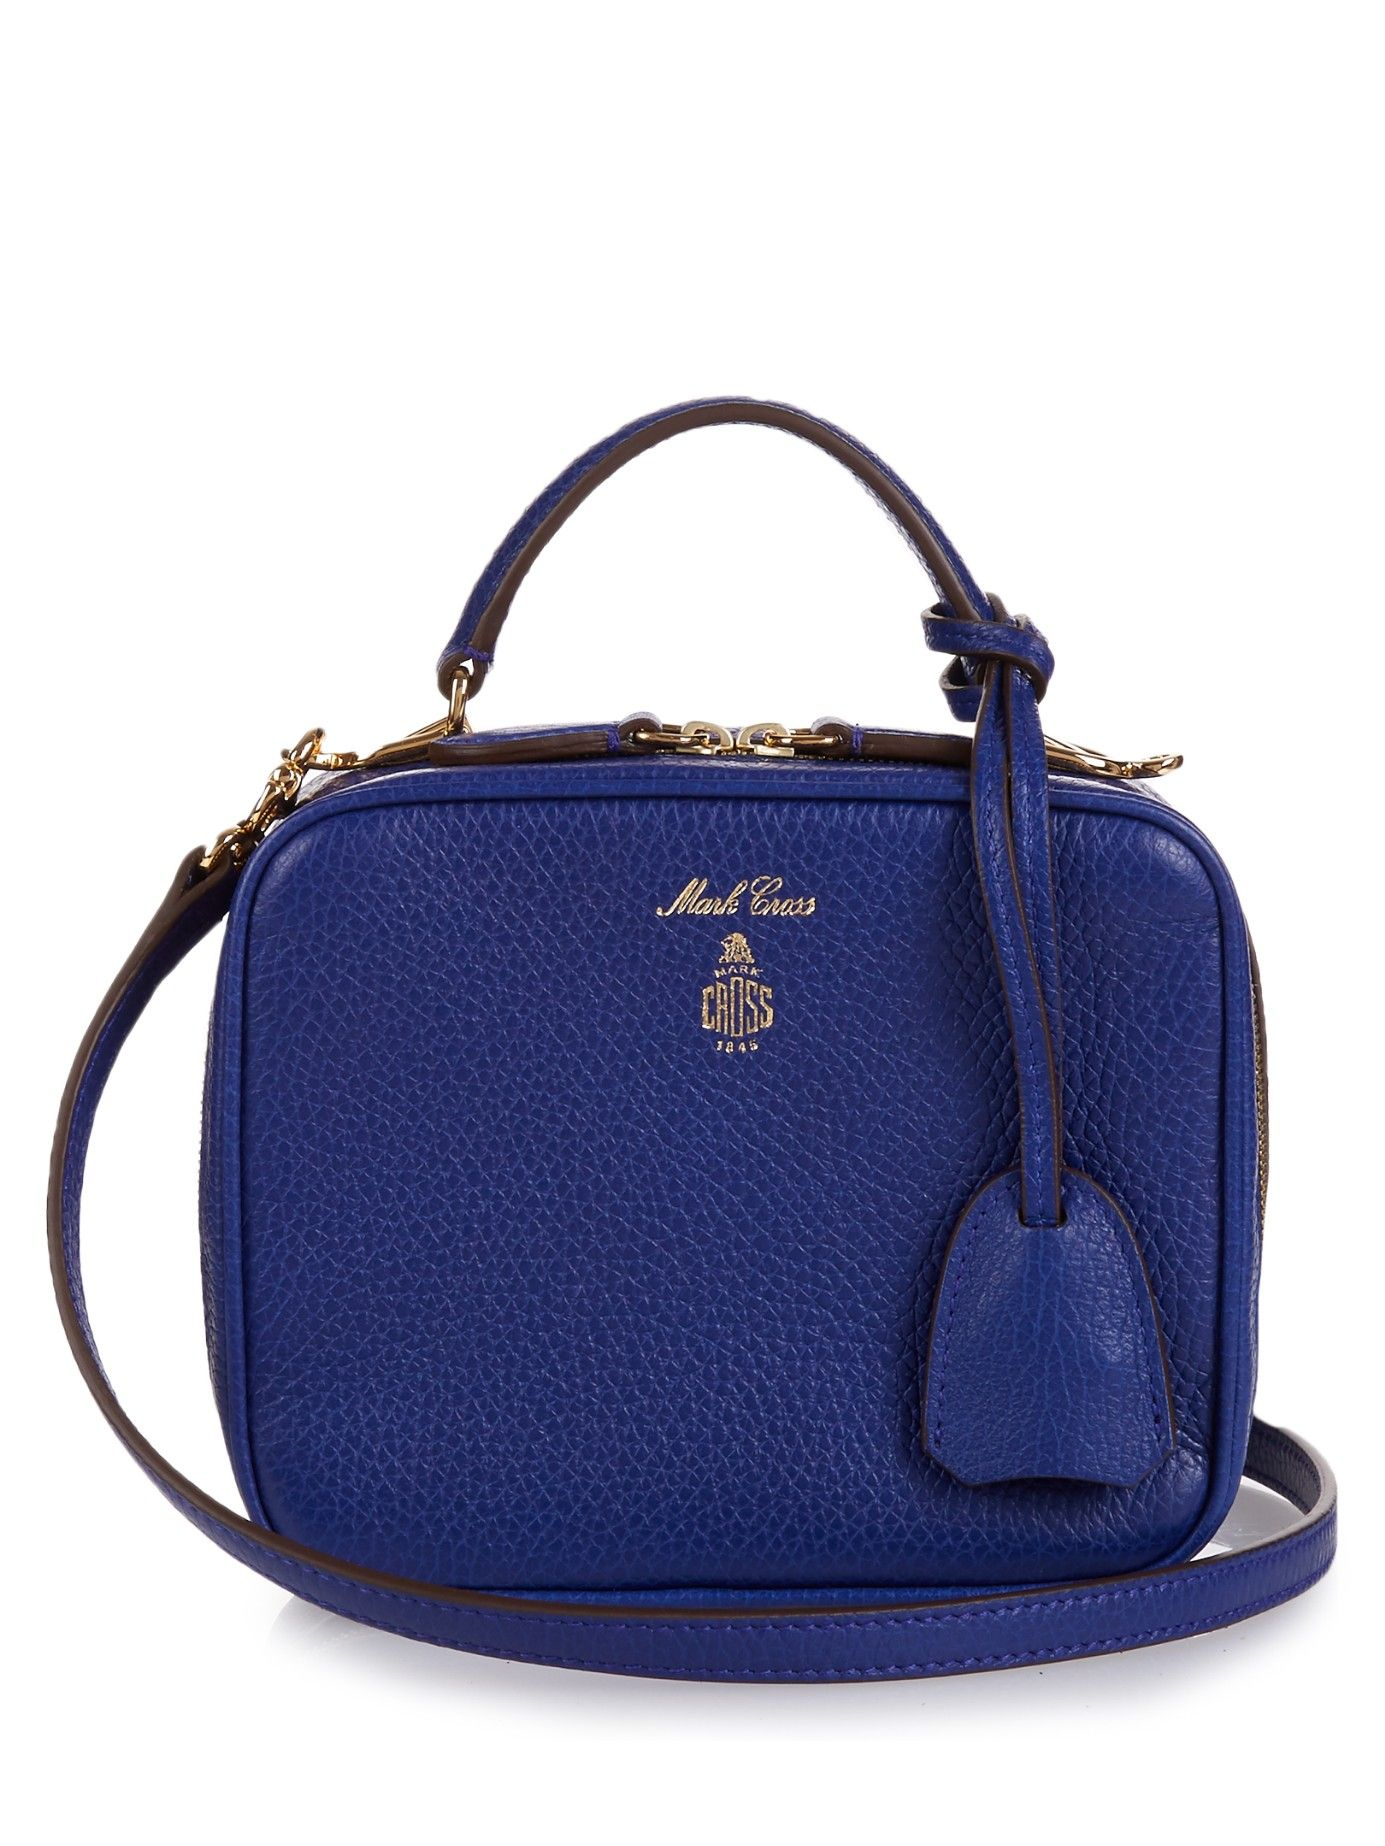 Laura Baby grained-leather shoulder bag | Mark Cross | MATCHESFASHION.COM US